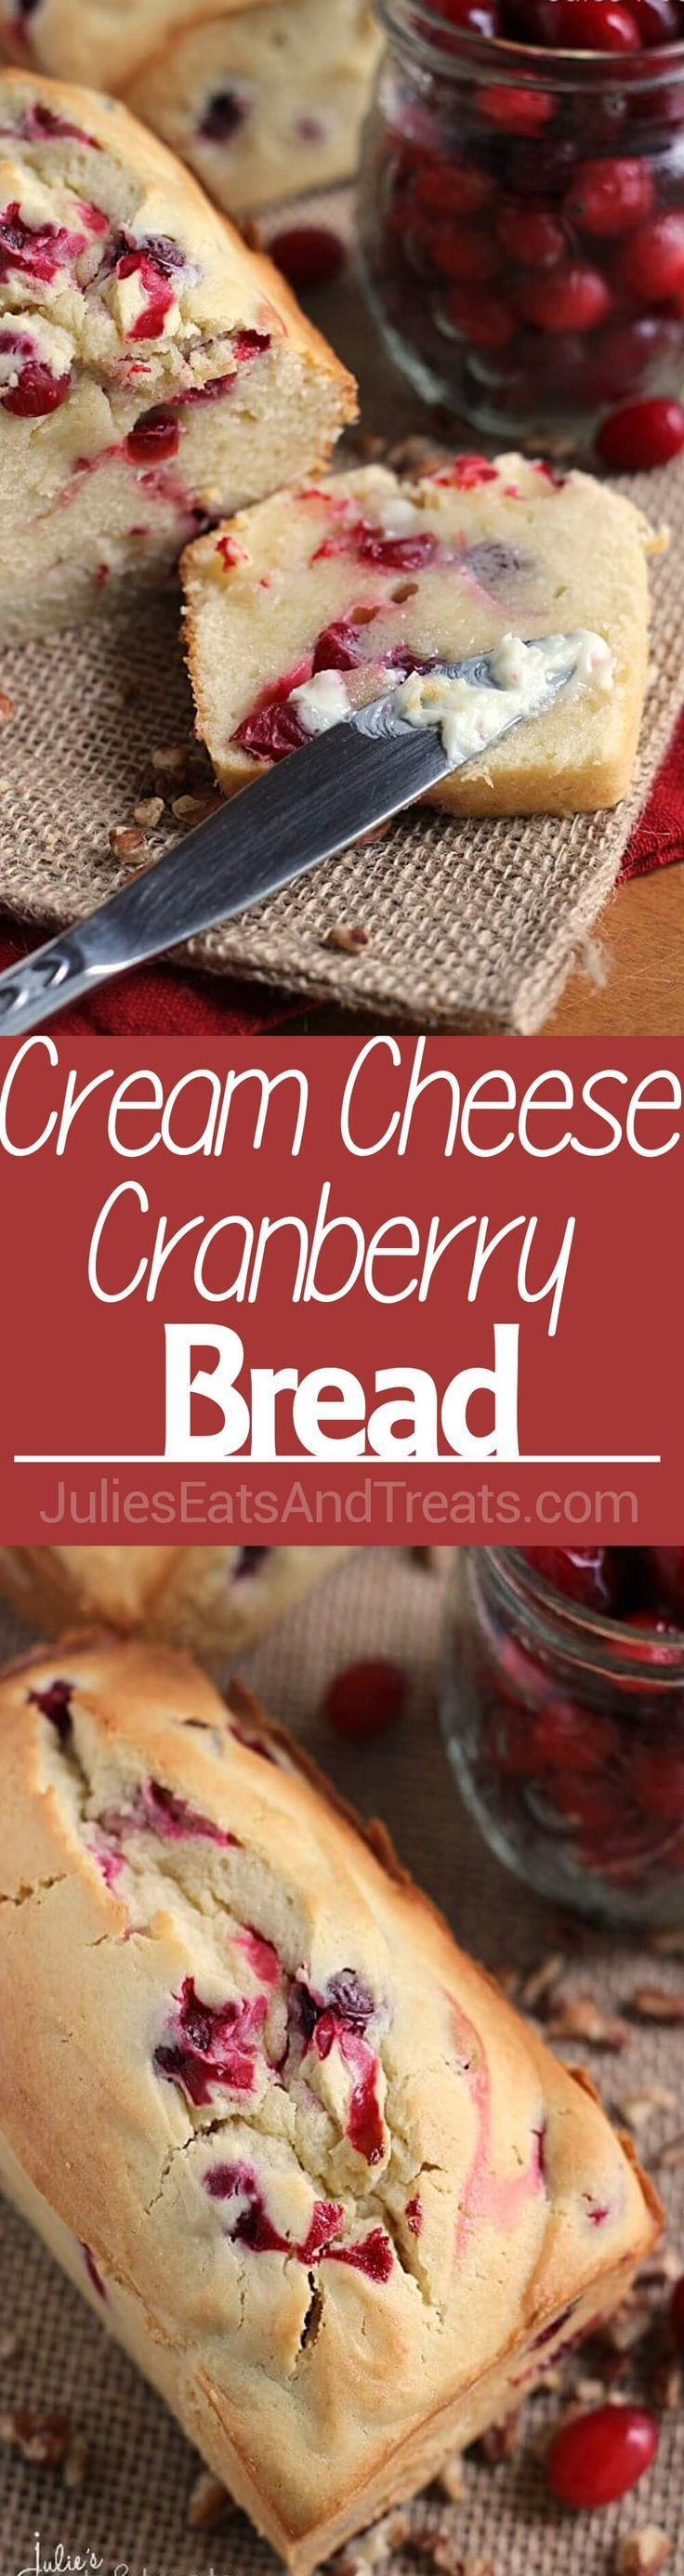 Cream Cheese Cranberry Bread Recipe